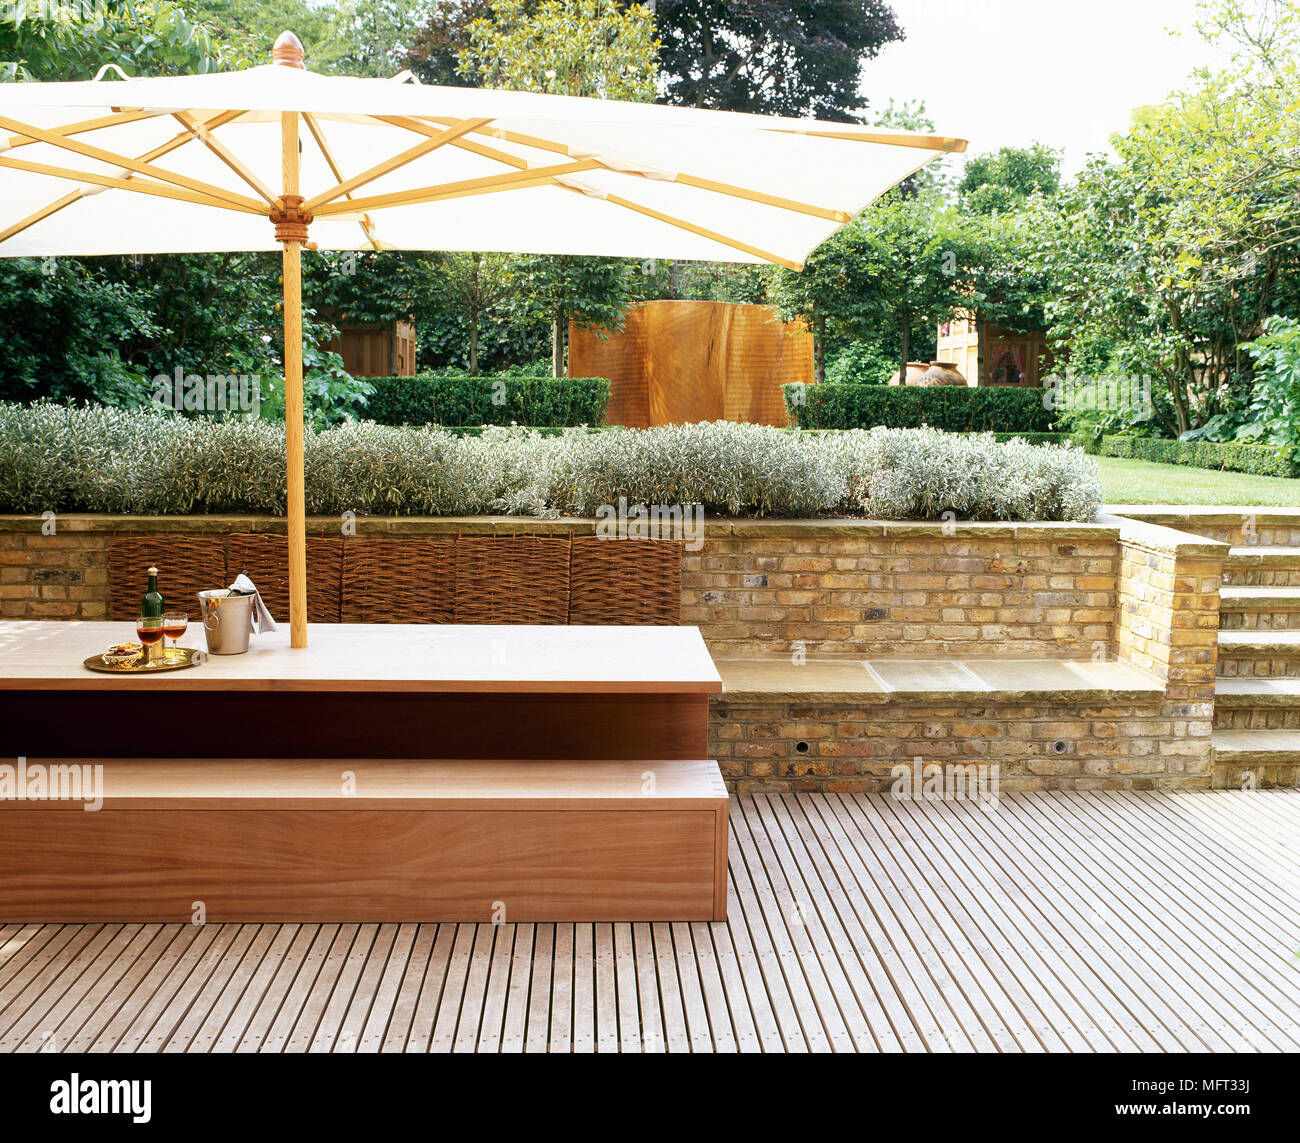 Patio Terrace Wooden Decking Table Bench Seat Parasol Terraces Patios Outside Outdoors Furniture Modern Stock Photo Alamy